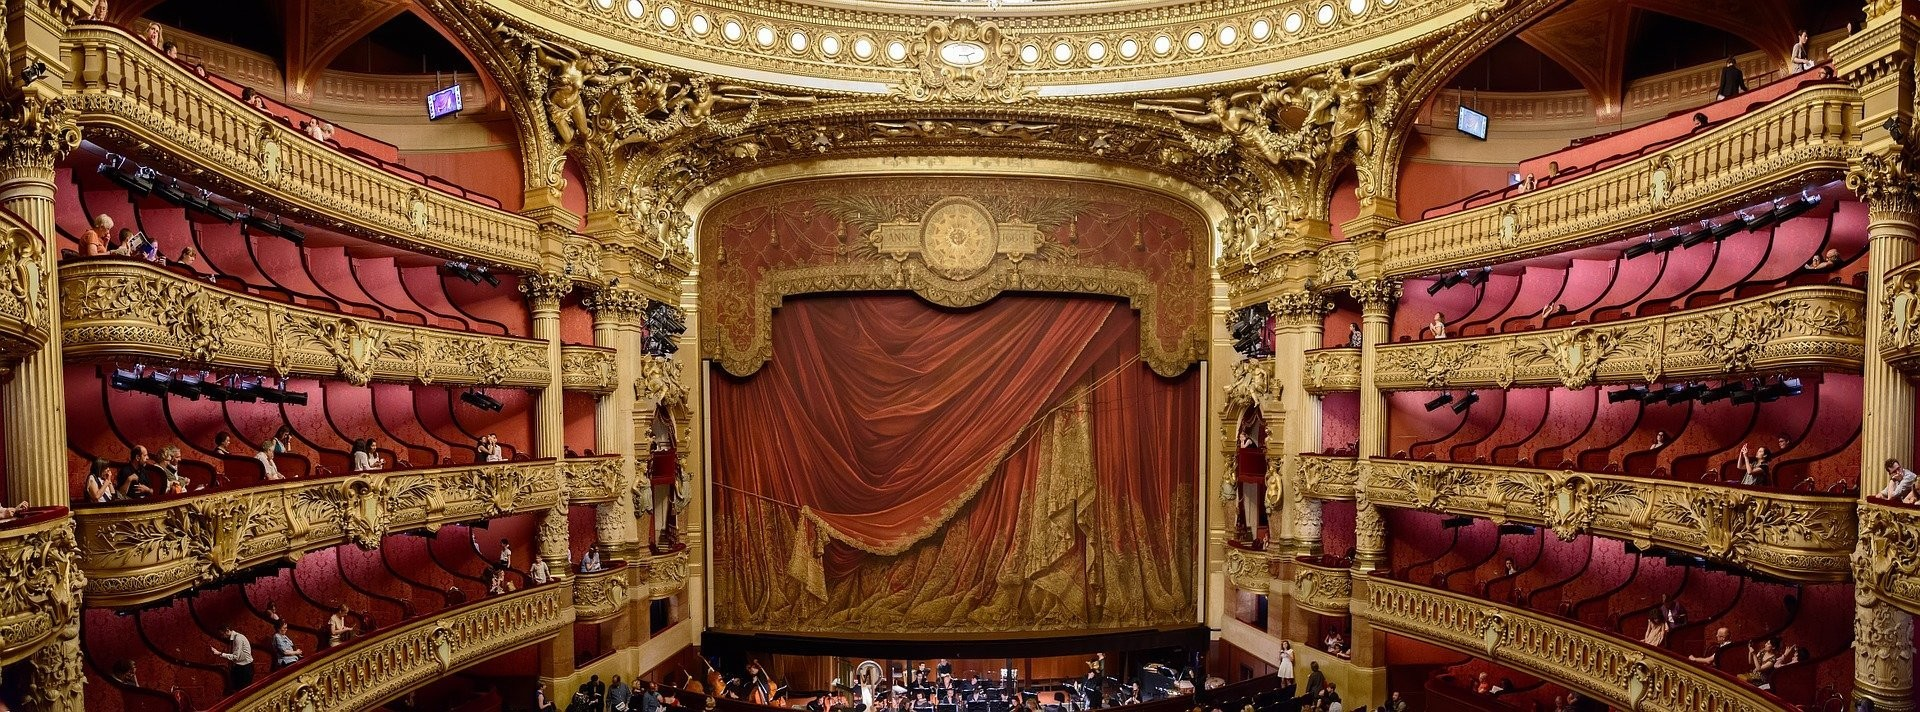 image of an opera house